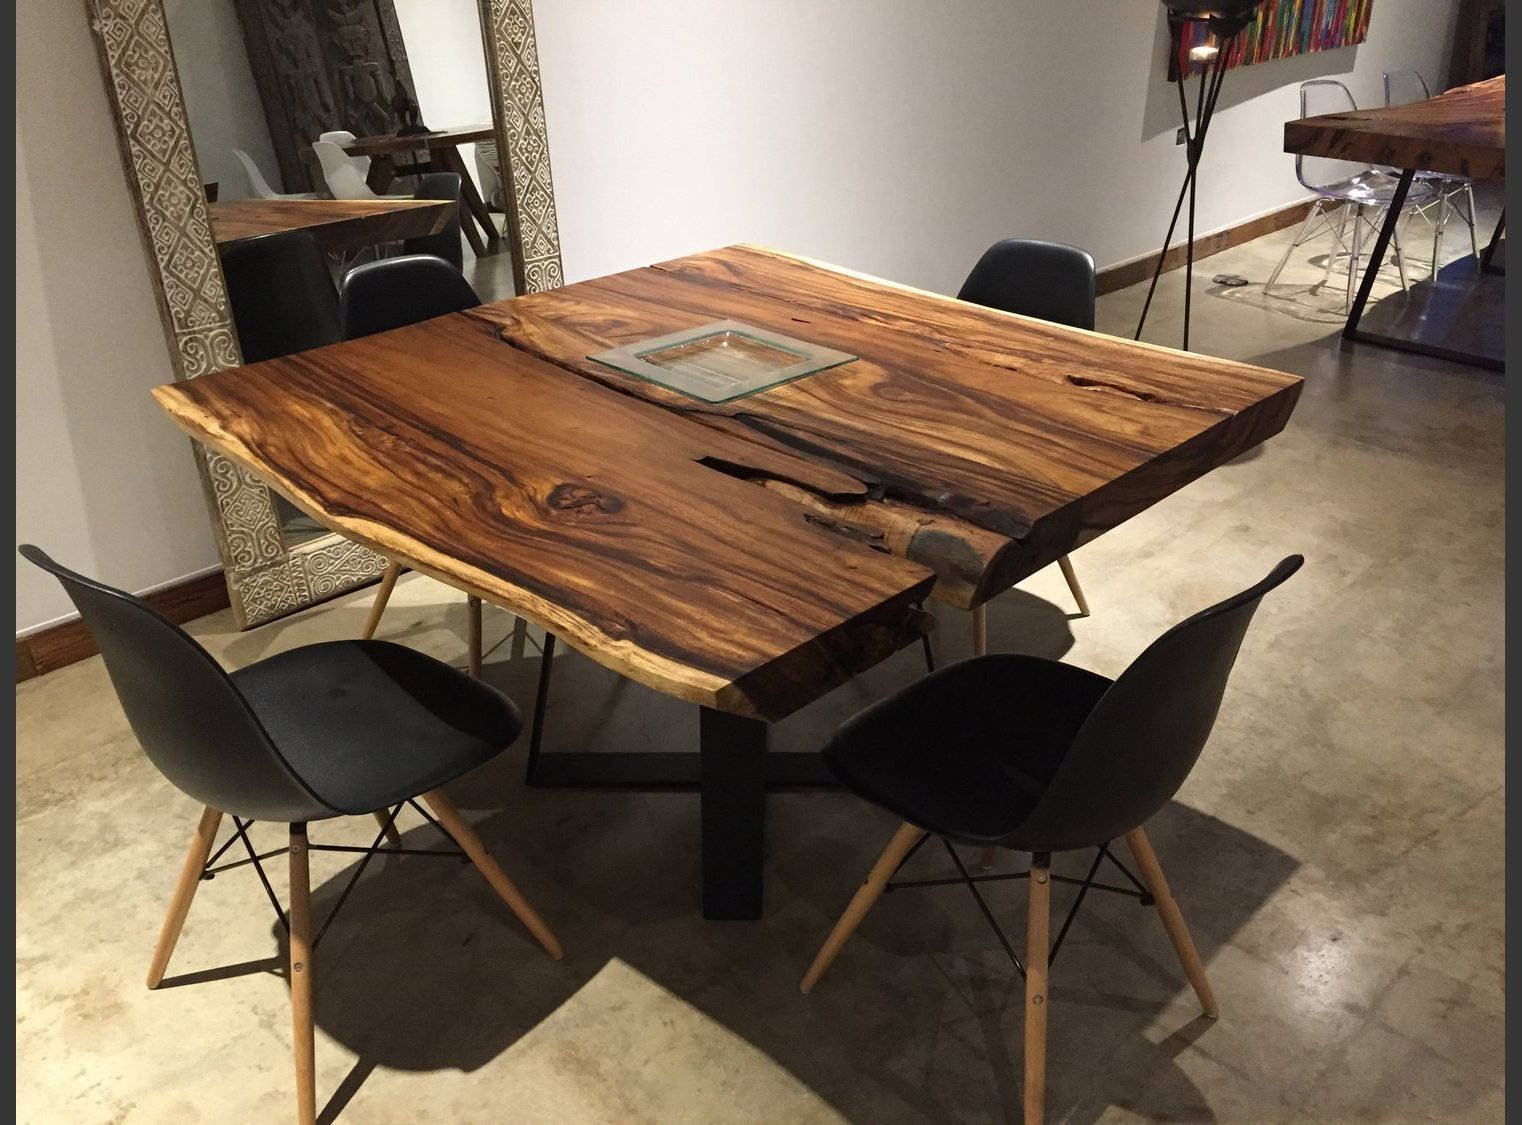 Image Result For Square Live Edge Dining Table Live Edge Dining Table Wood Dining Room Table Rustic Dining Room Table